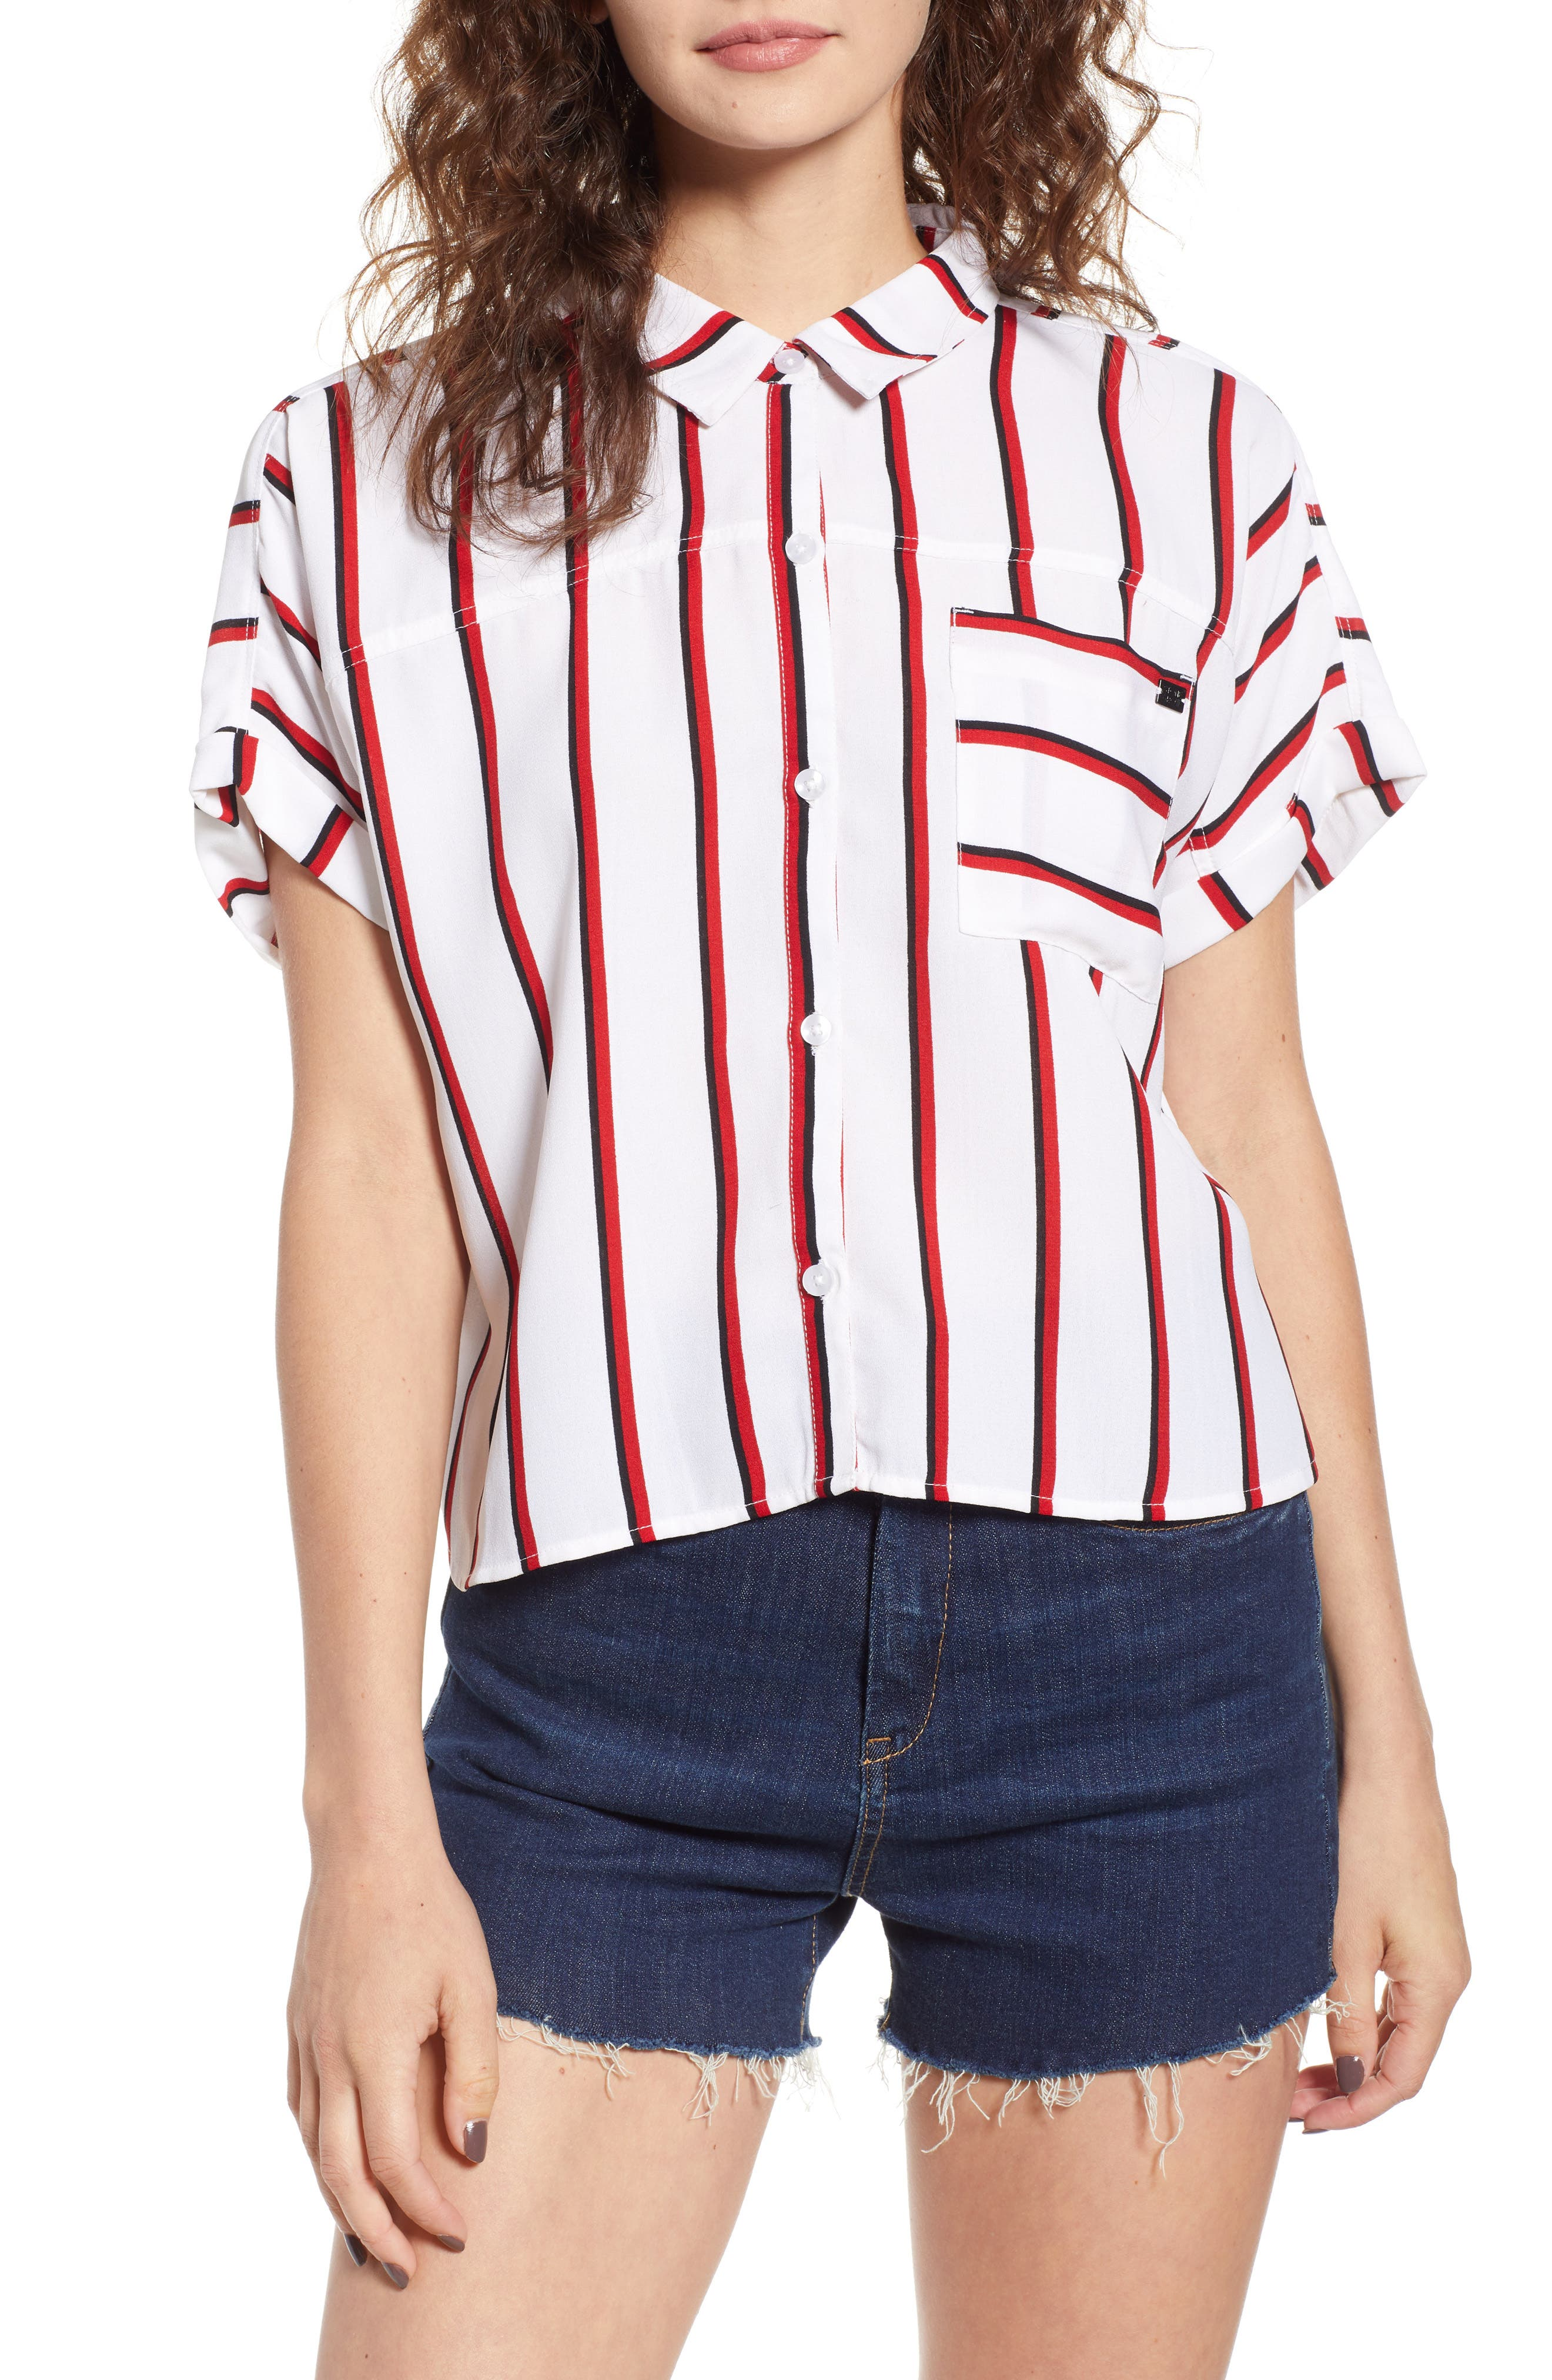 Counting Moons Stripe Top,                             Main thumbnail 1, color,                             Chili Red